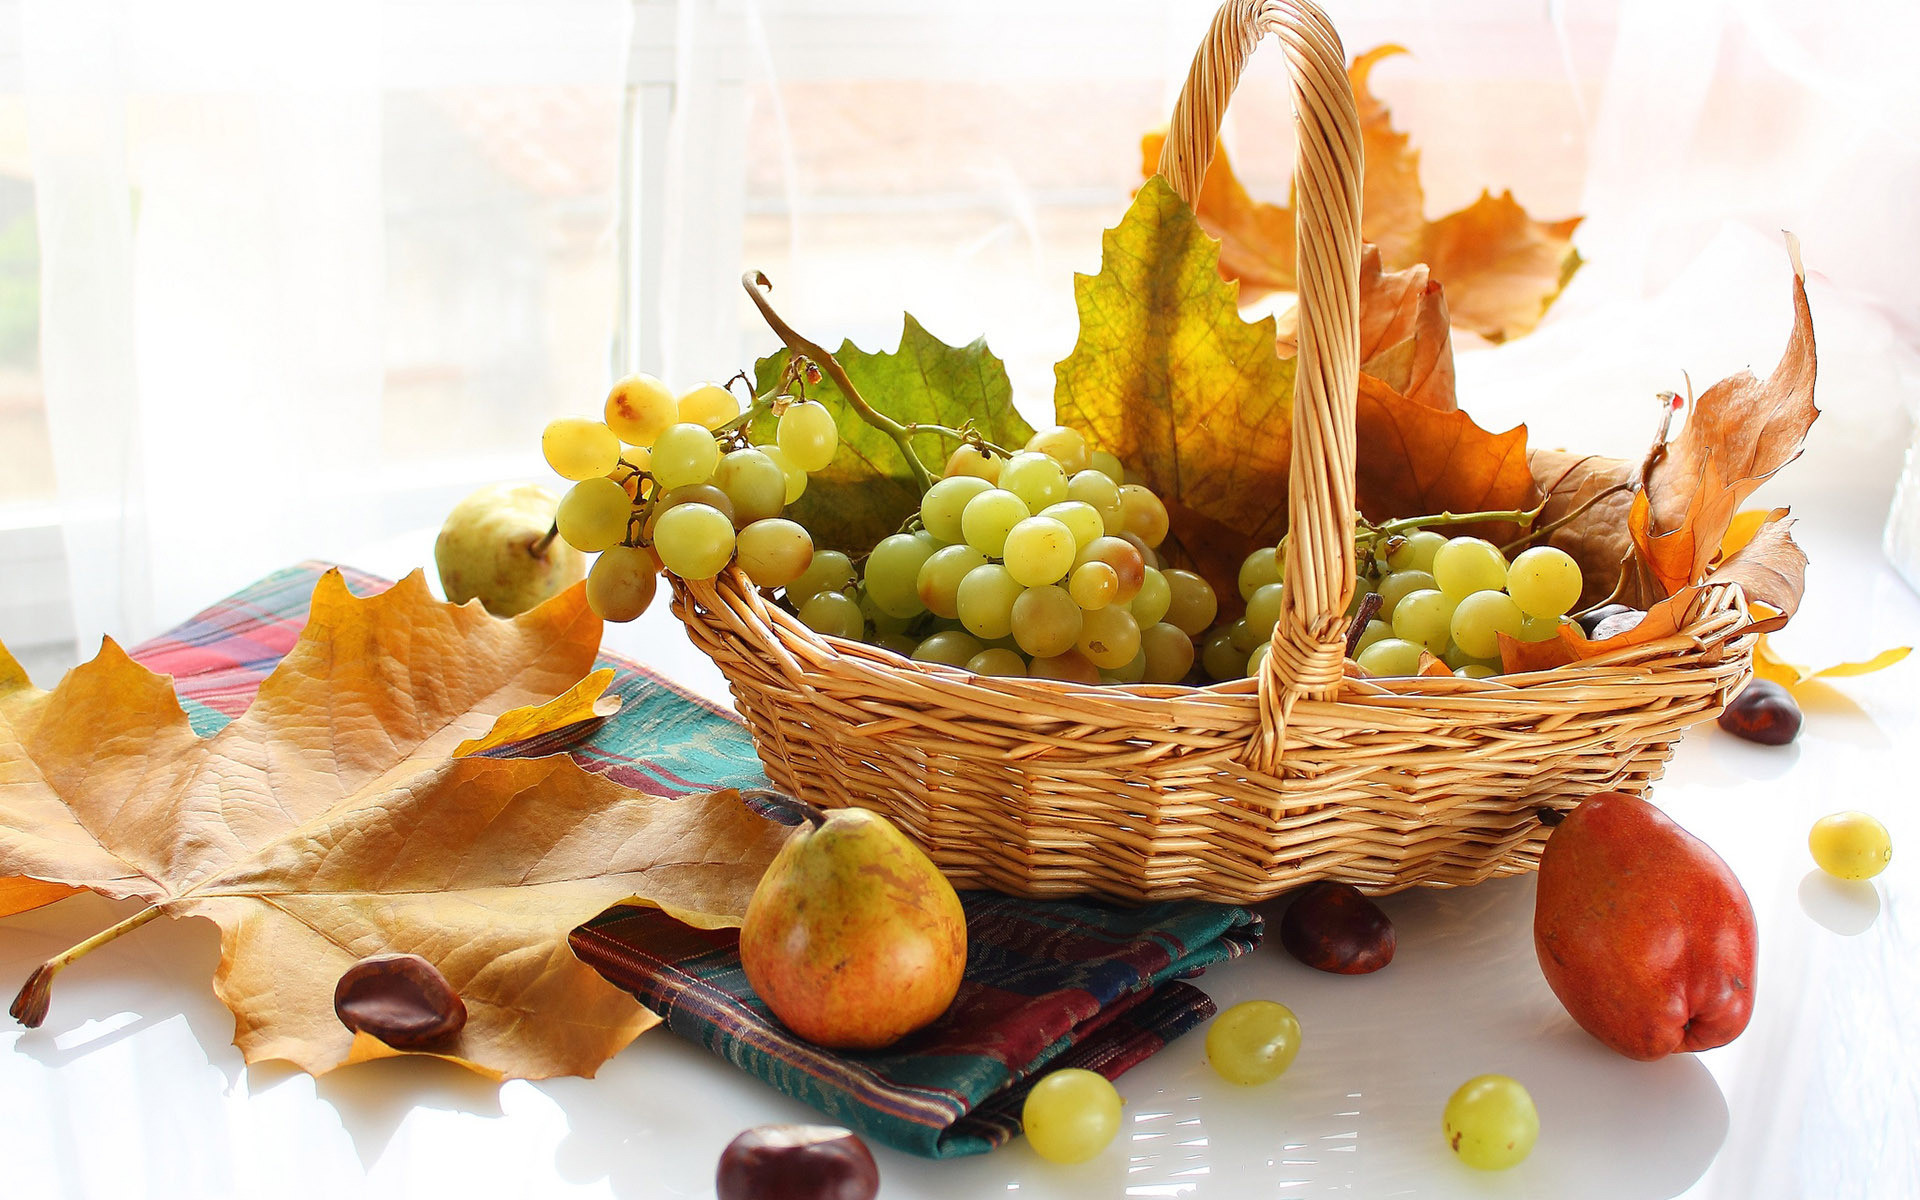 Res: 1920x1200, Fruits In The Basket HD Wallpaper